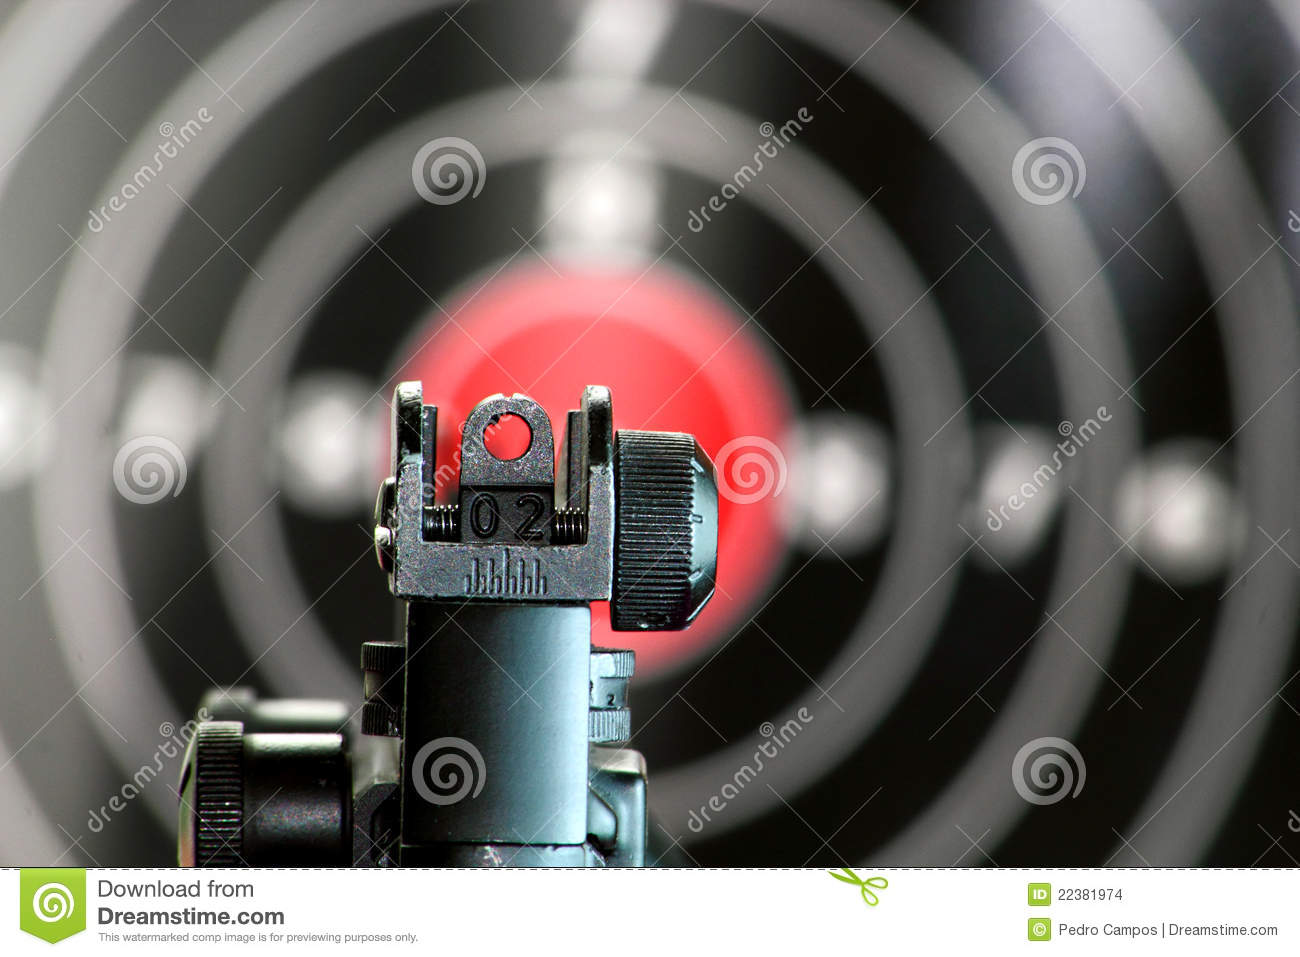 how to aim open sights